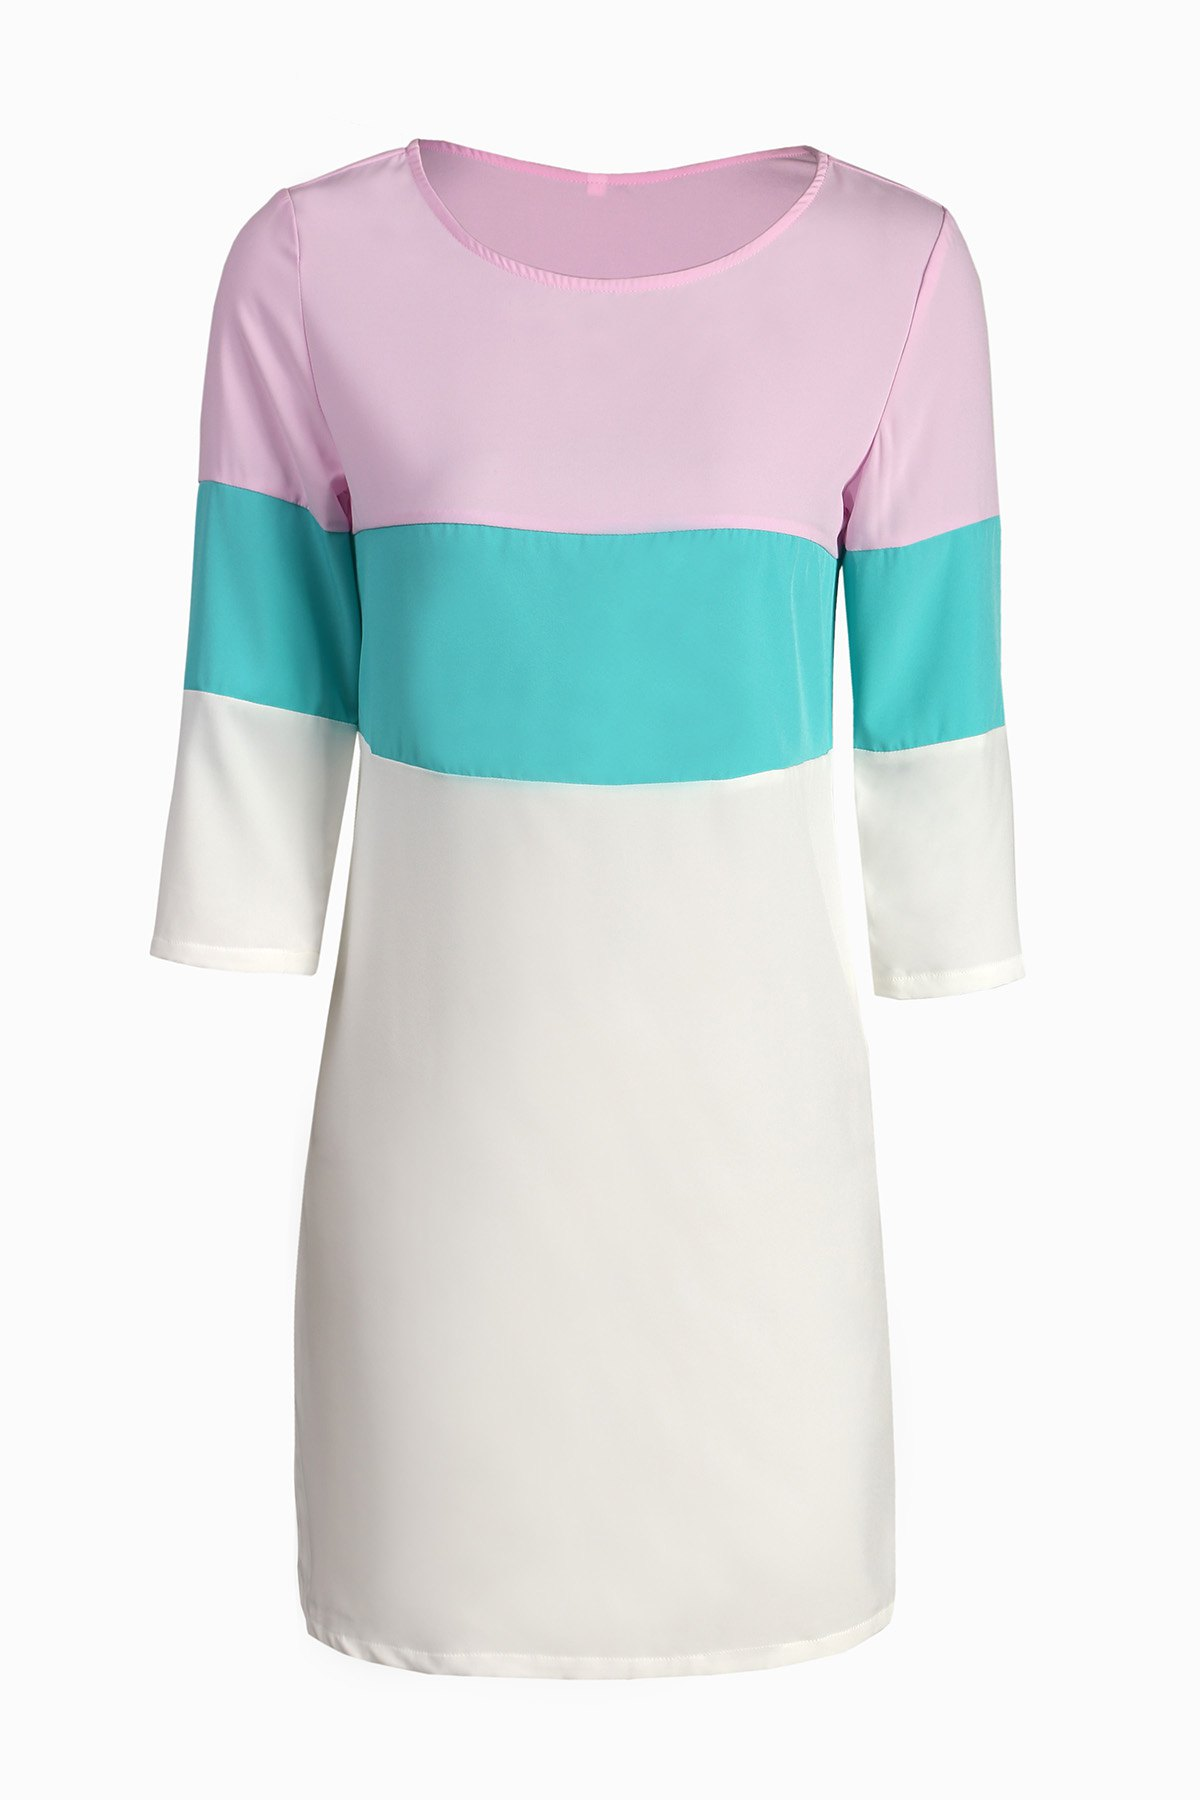 Stylish Round Neck 3/4 Sleeve Color Block Loose Women's Dress - COLORMIX S